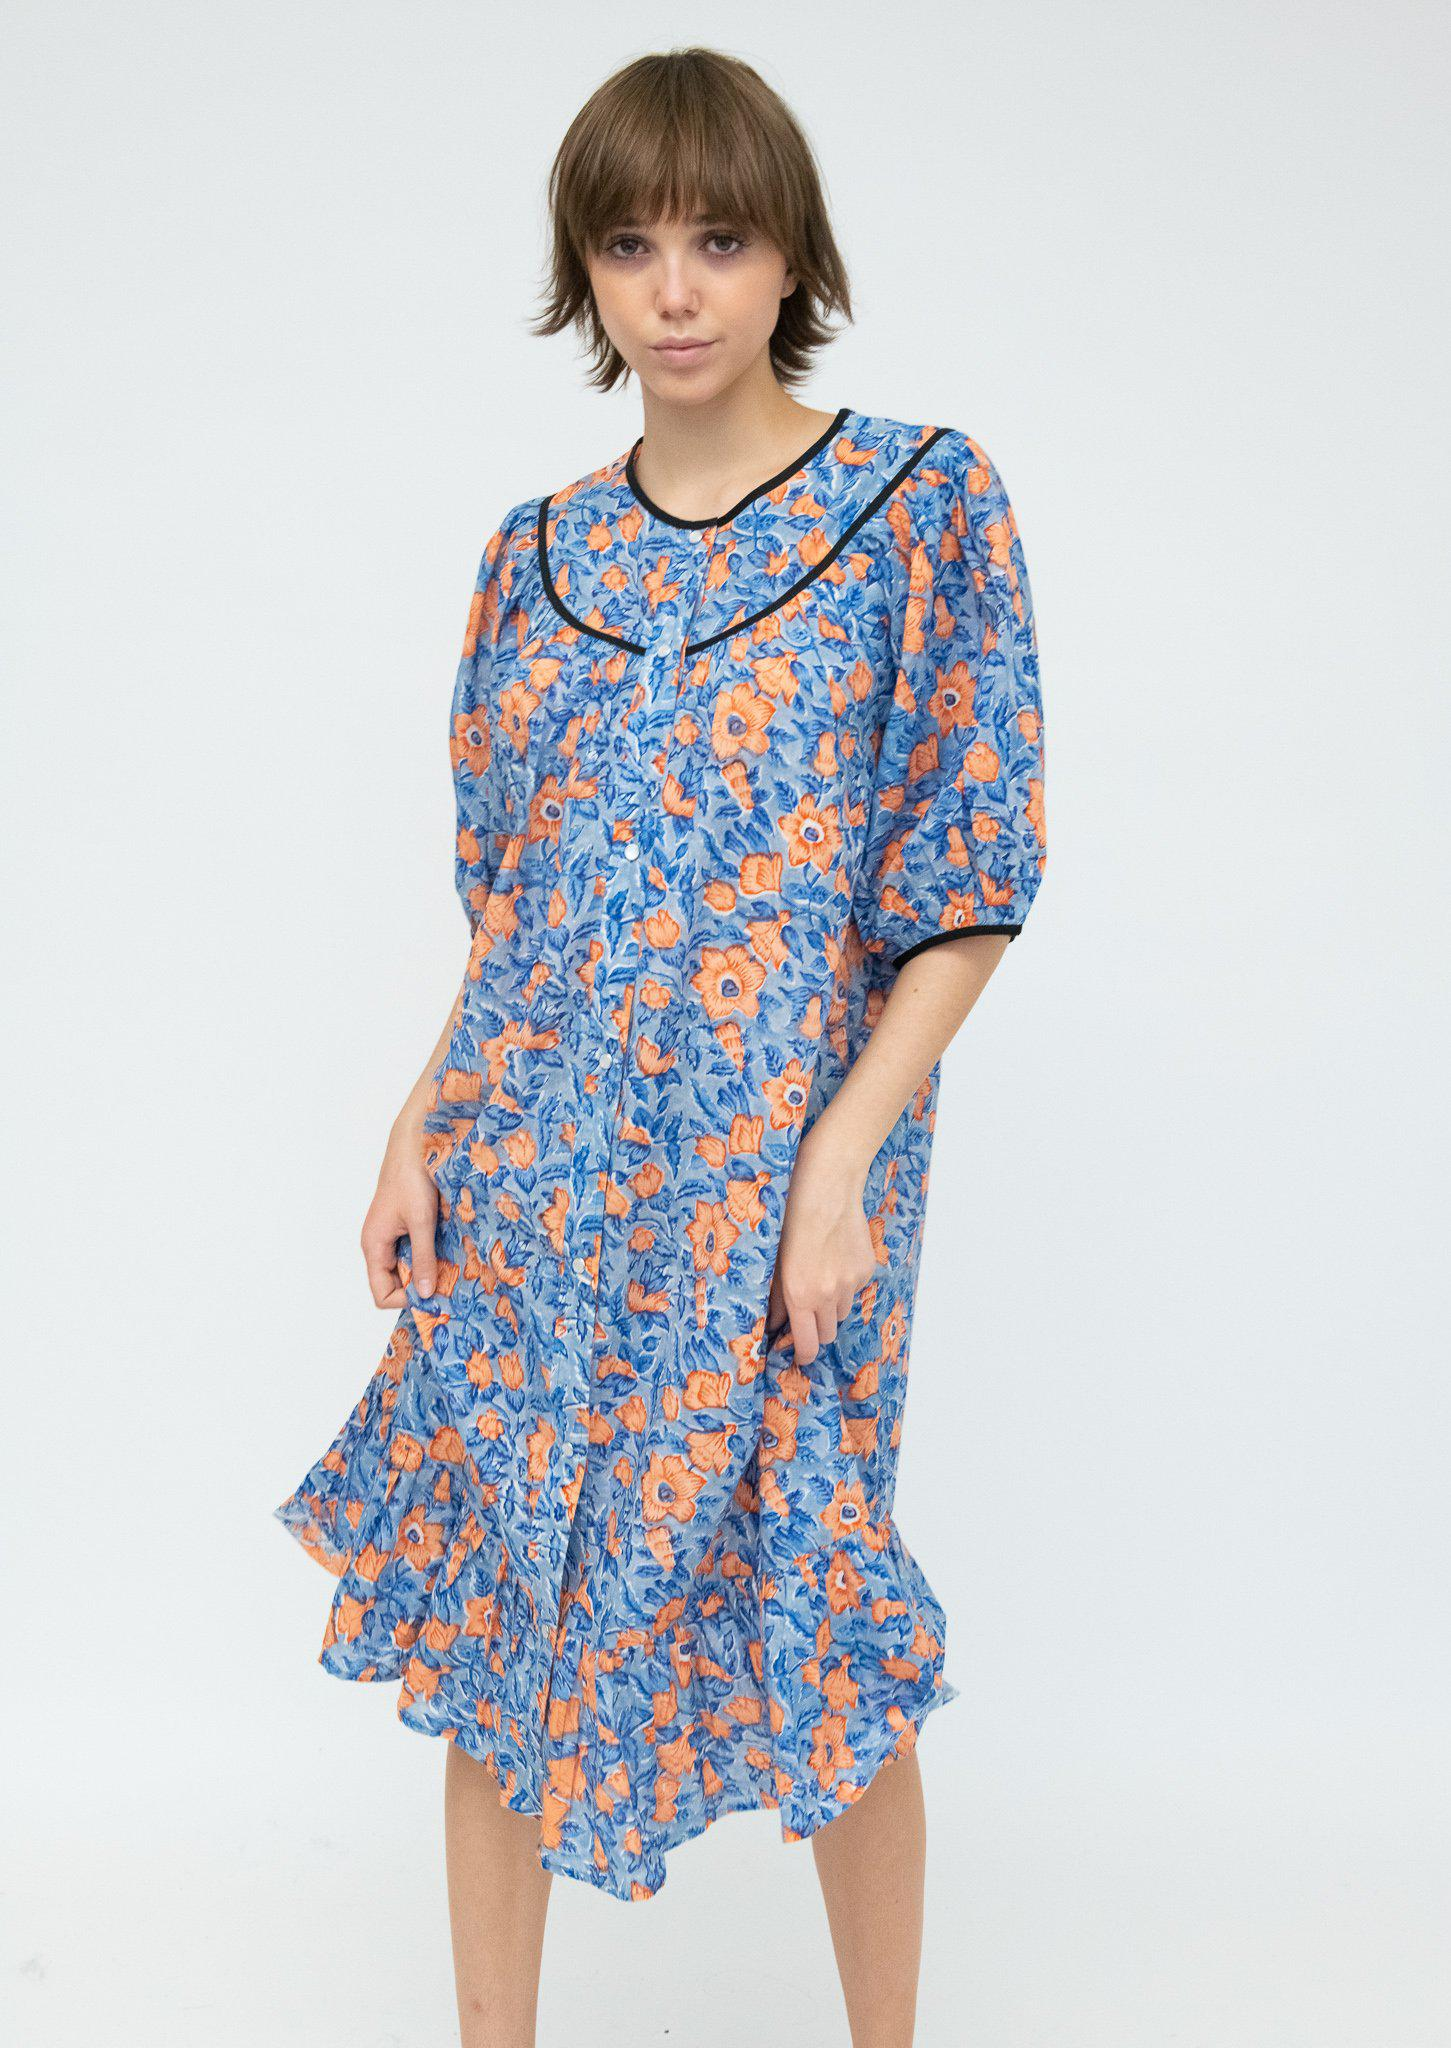 Snap Housedress in Blue and Peach Floral